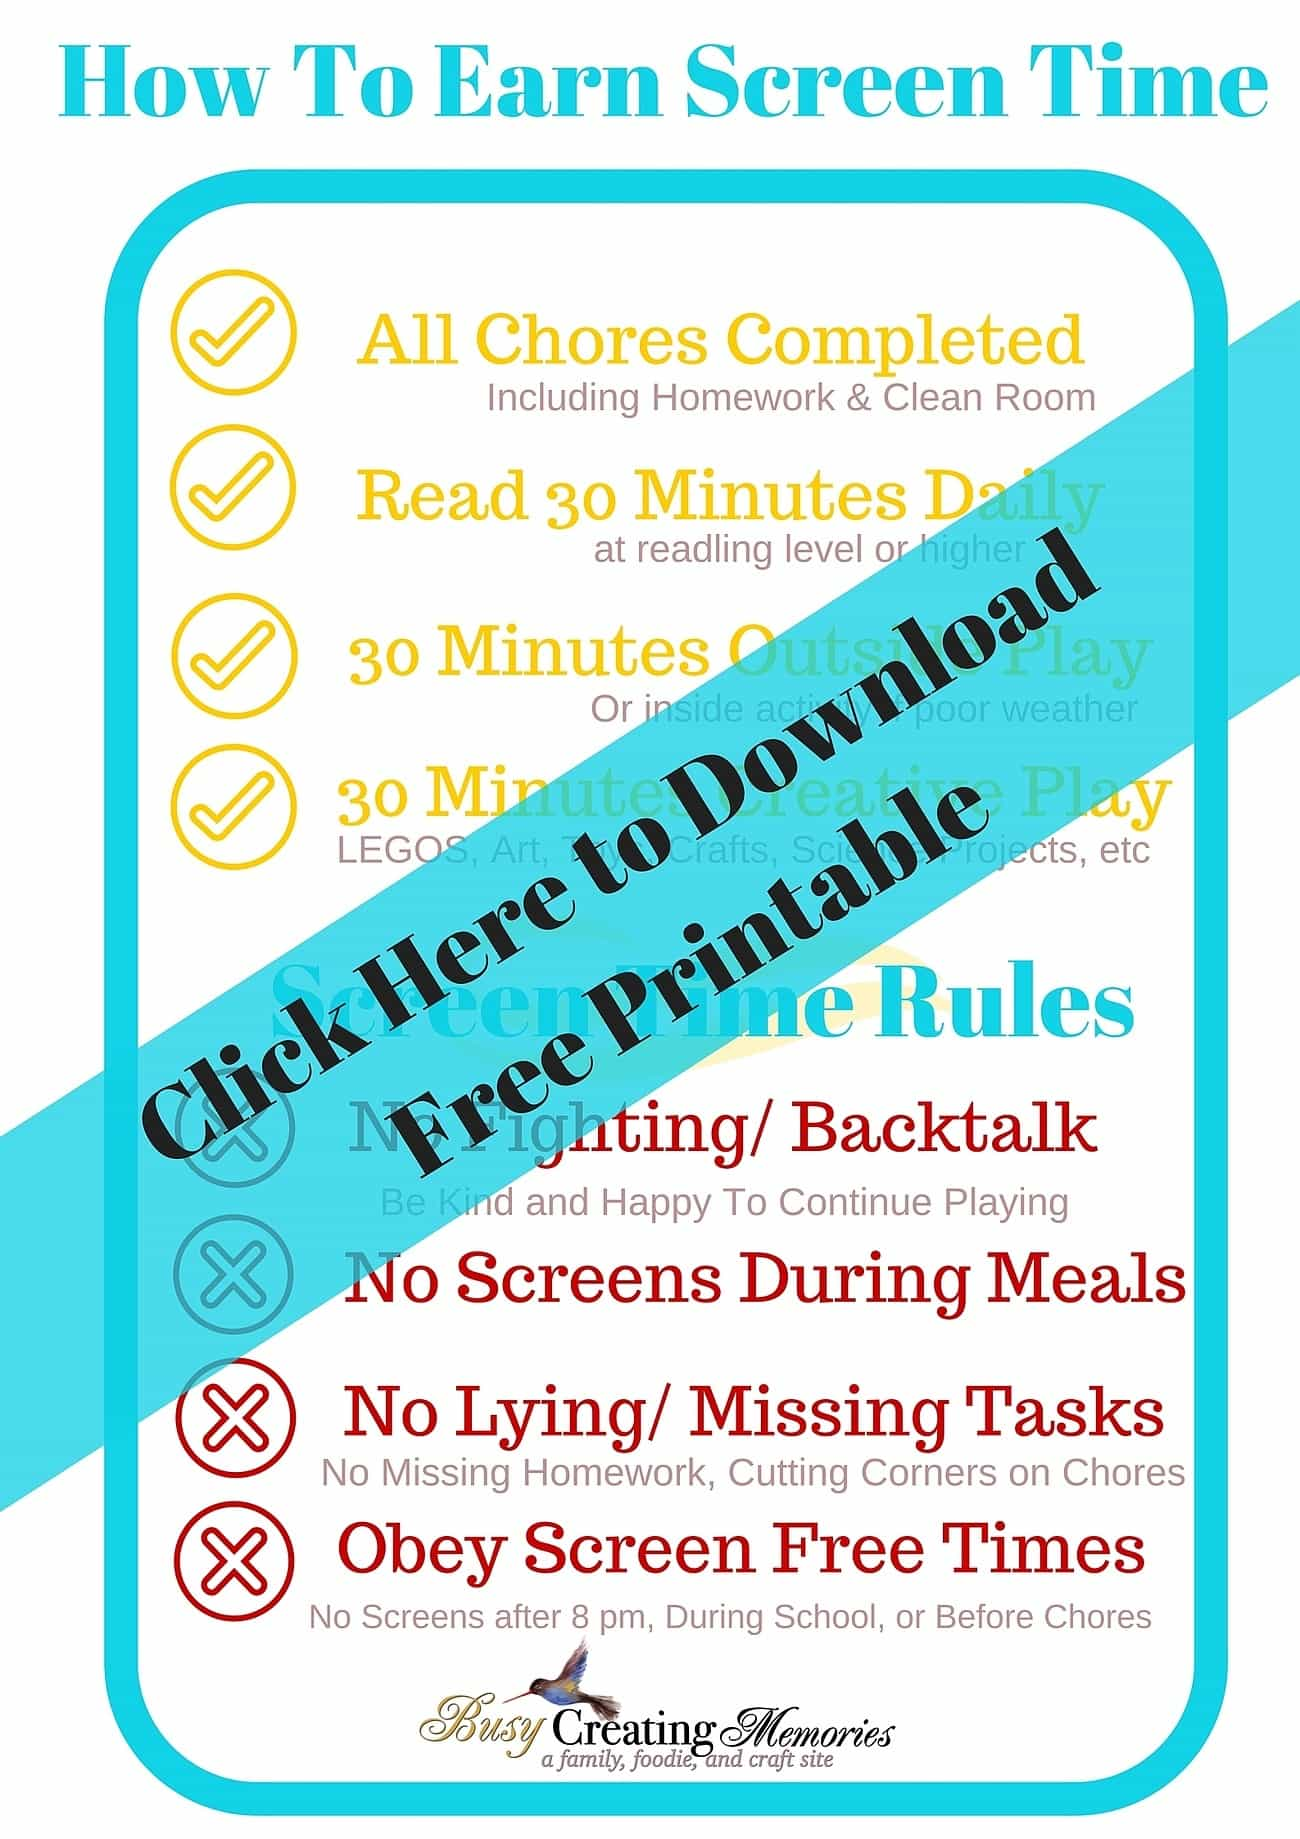 How To Teach Responsible Screen Time Use to Kids + Free Printable